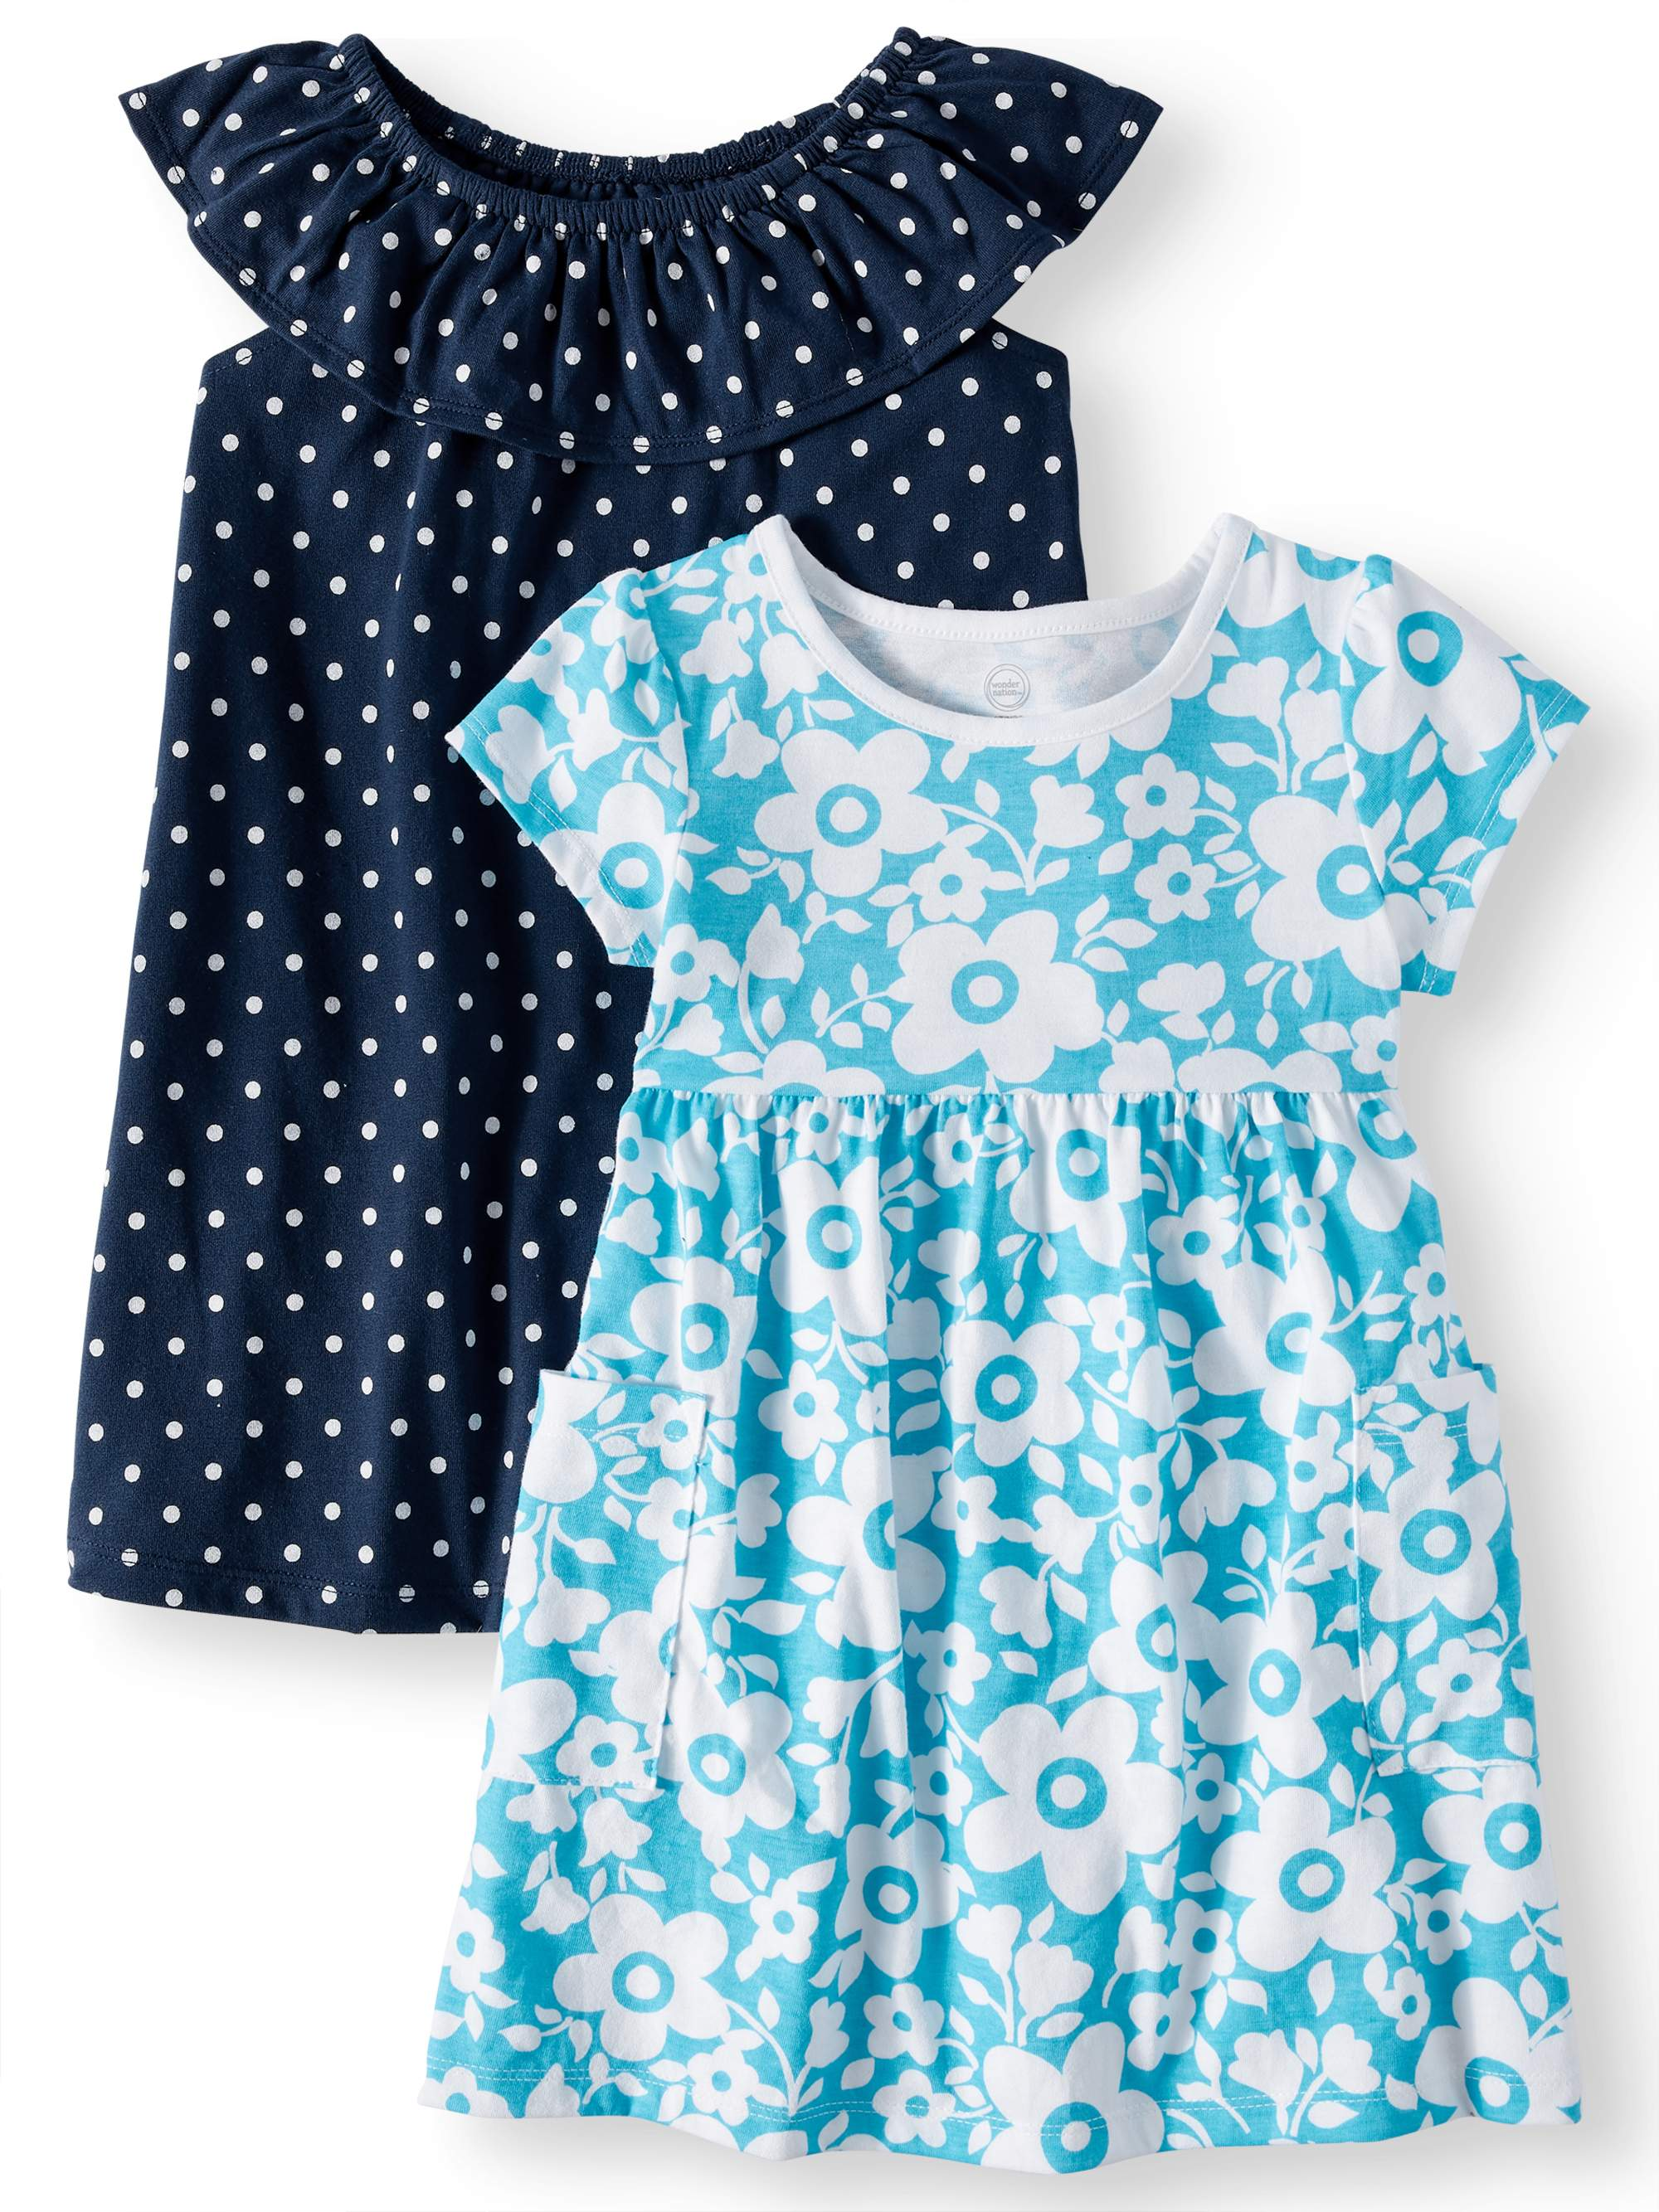 Knit Dresses, 2-pack (Toddler Girls)